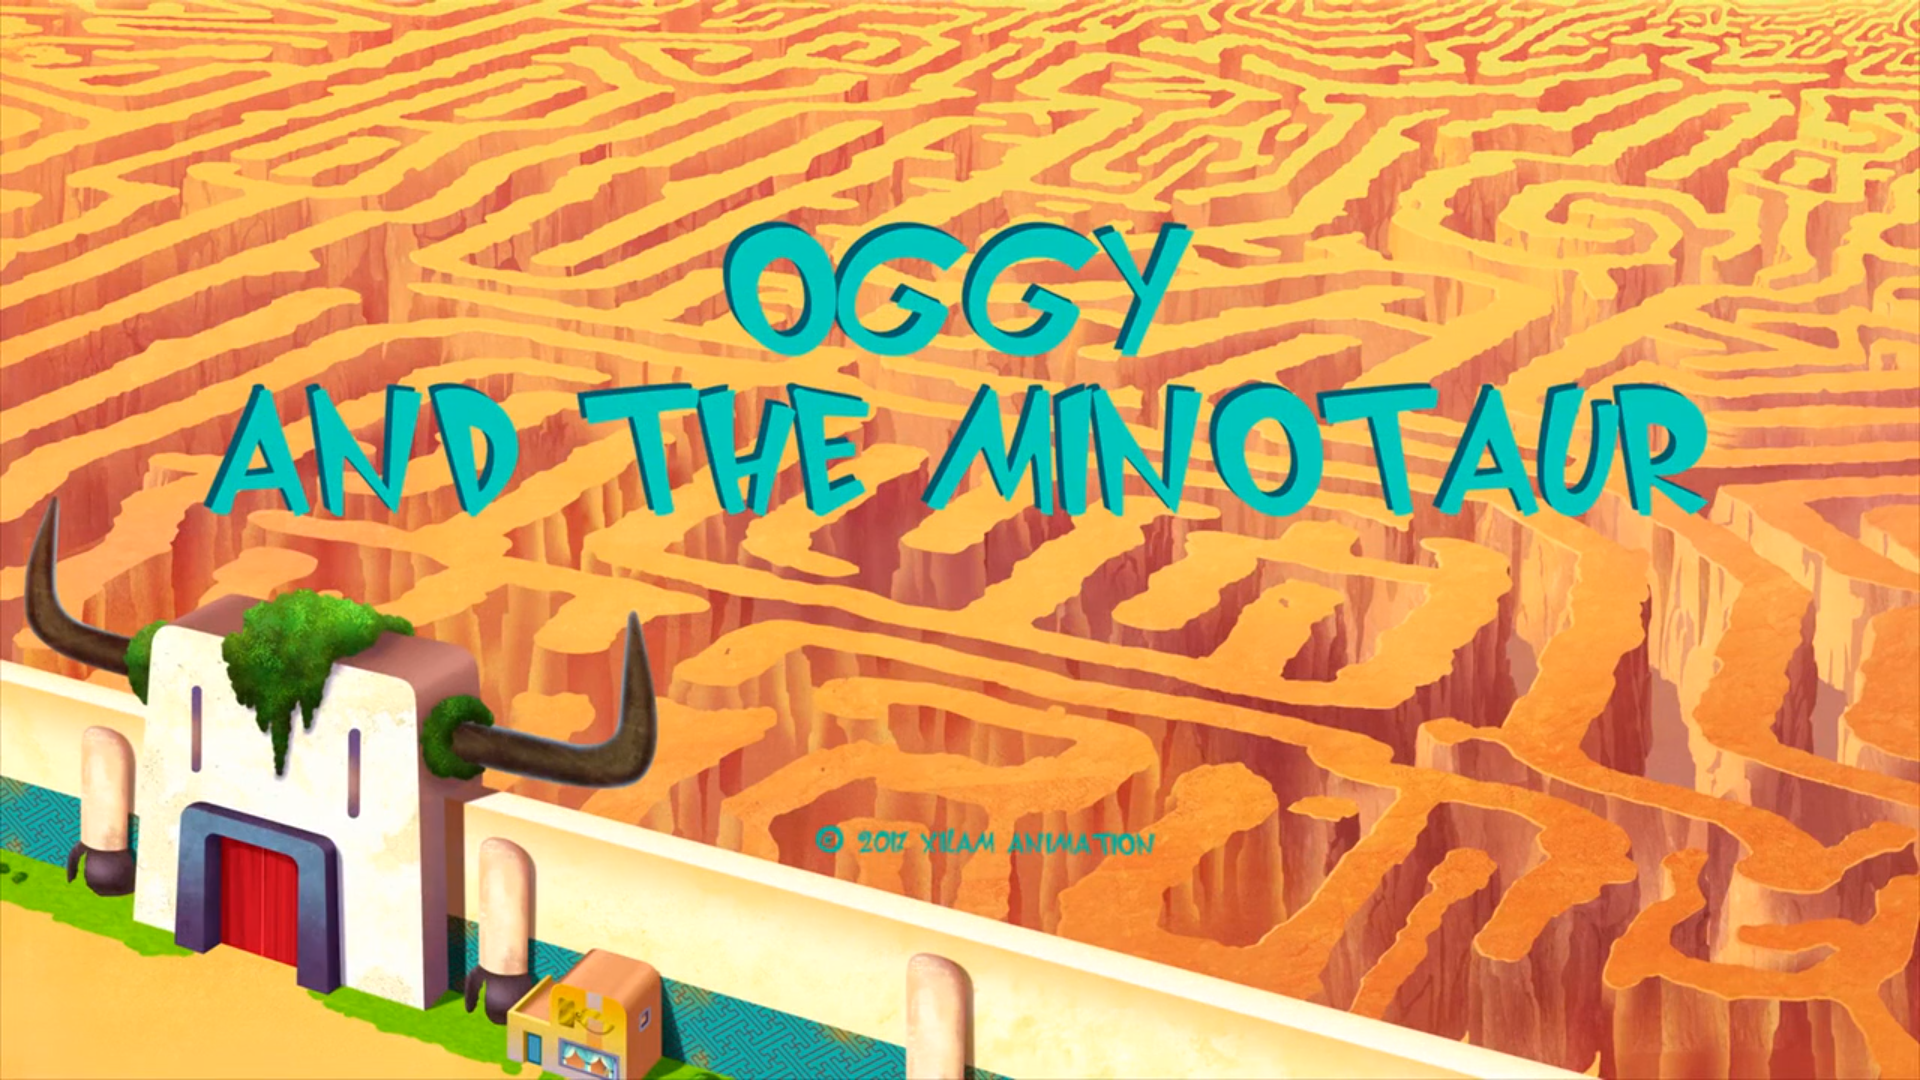 Oggy and the Minotaur